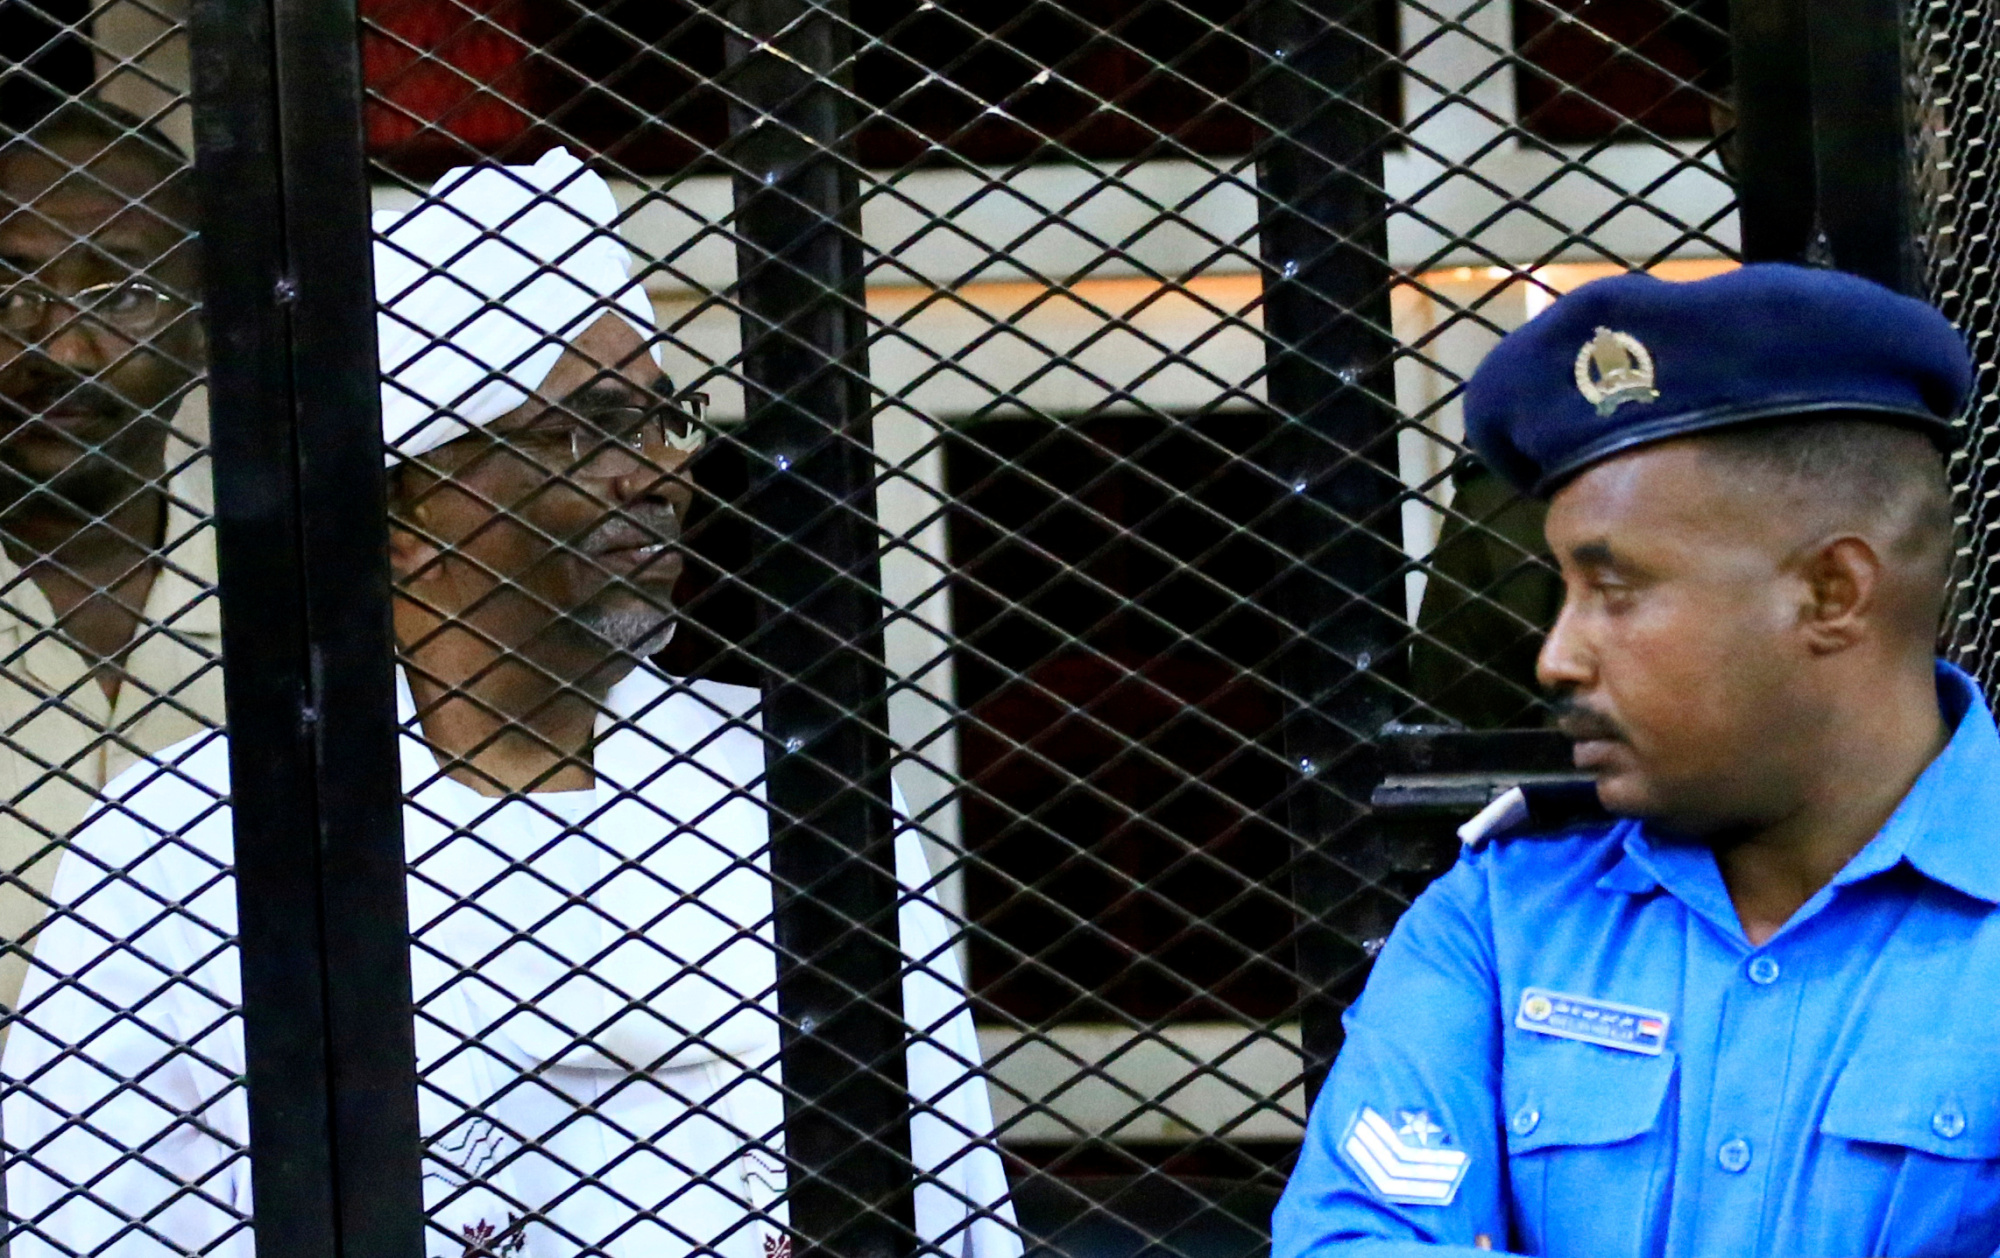 Sudan's jailed former president, Omar Hassan al-Bashir, sits inside a cage during a court hearing in Khartoum in December.   REUTERS